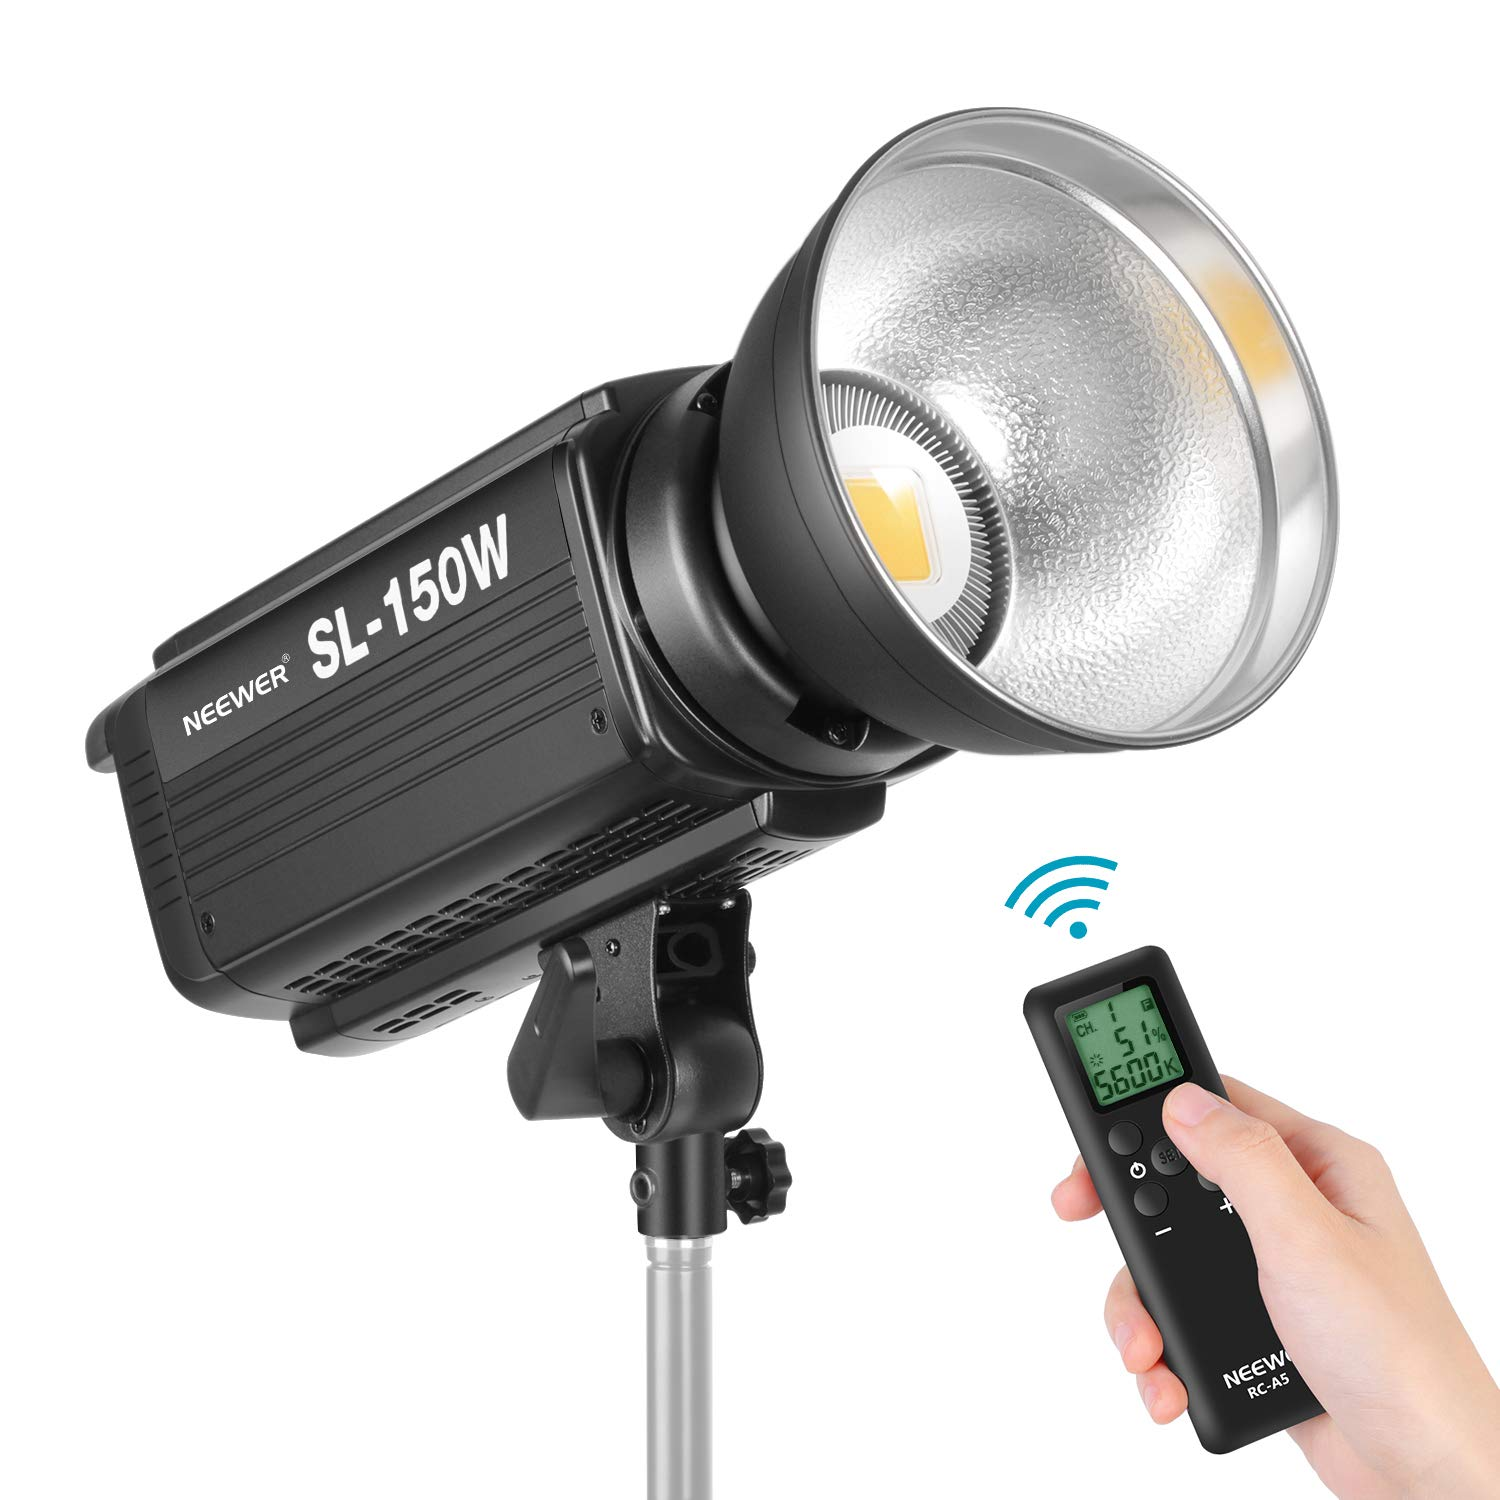 Neewer 150W 5600K Dimmable LED Video Light, RA 93+ 16000LM Continuous Lighting with Bowens Mount, 6 Groups 16 Channel Remote Control for Studio Video Lighting YouTube Vine Portrait Photography by Neewer